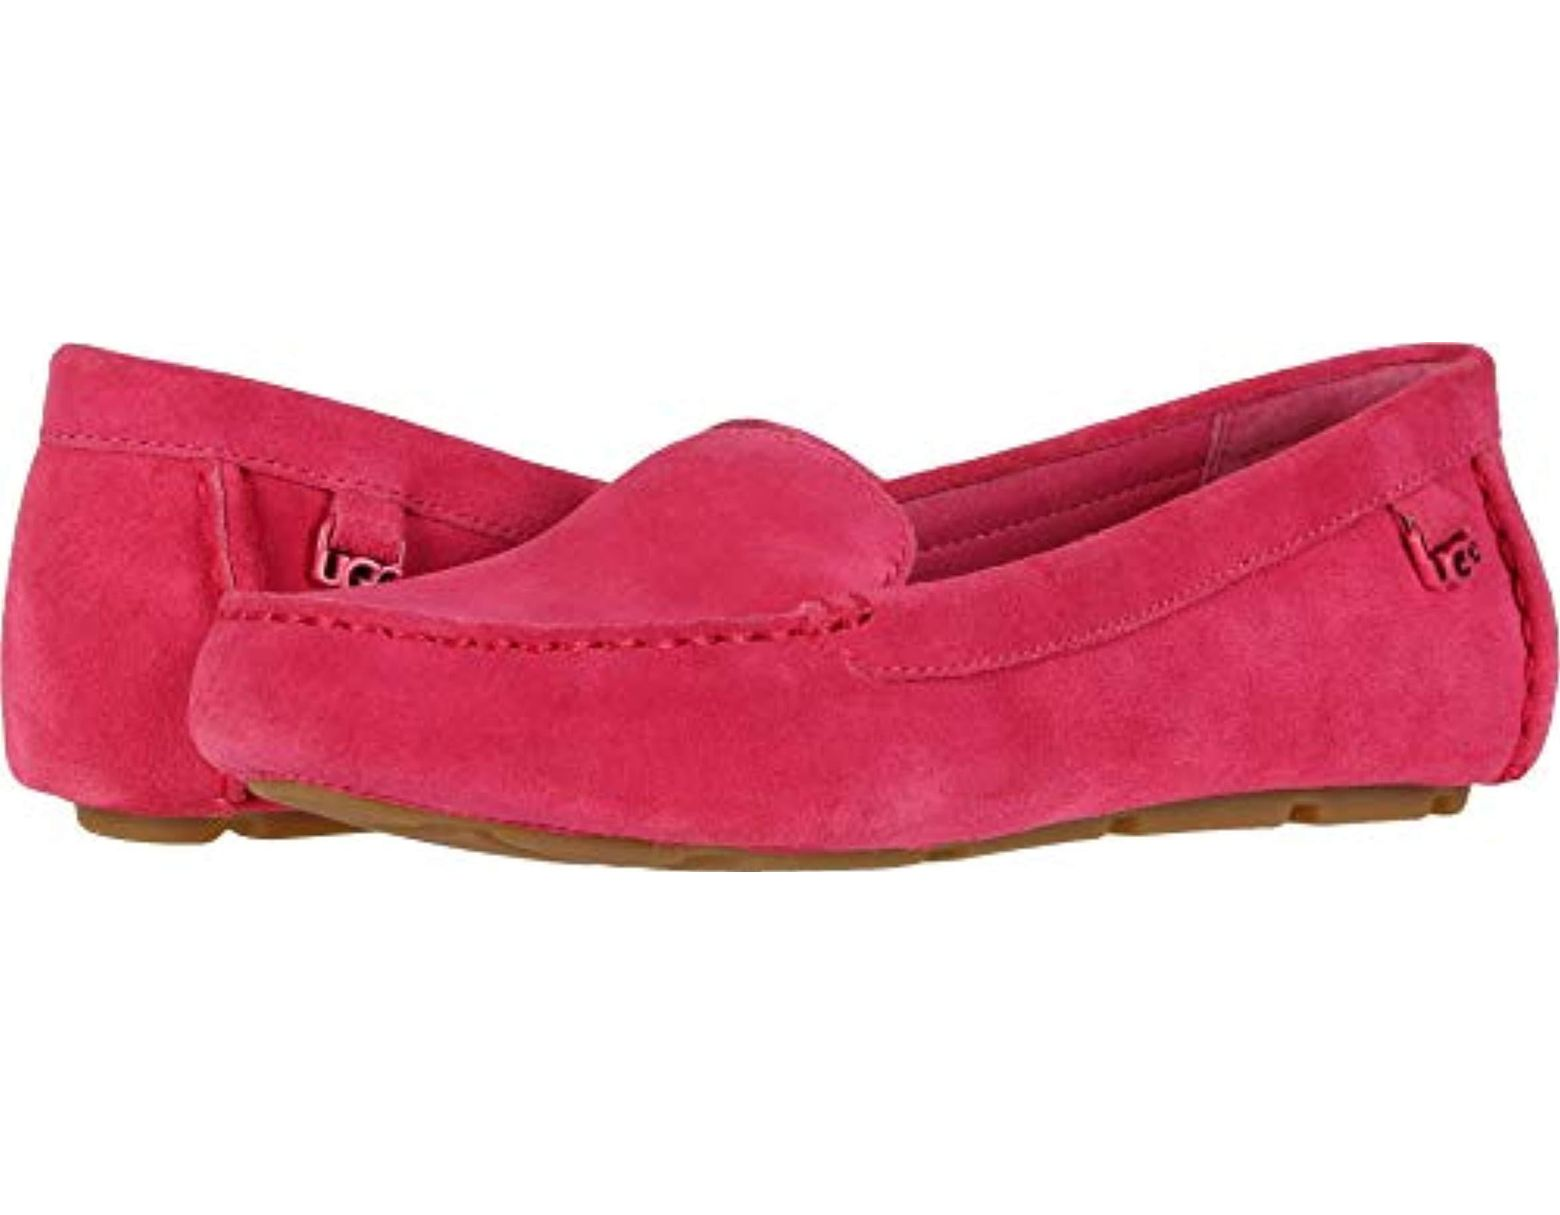 5474cd69508 Women's Flores Driving Style Loafer